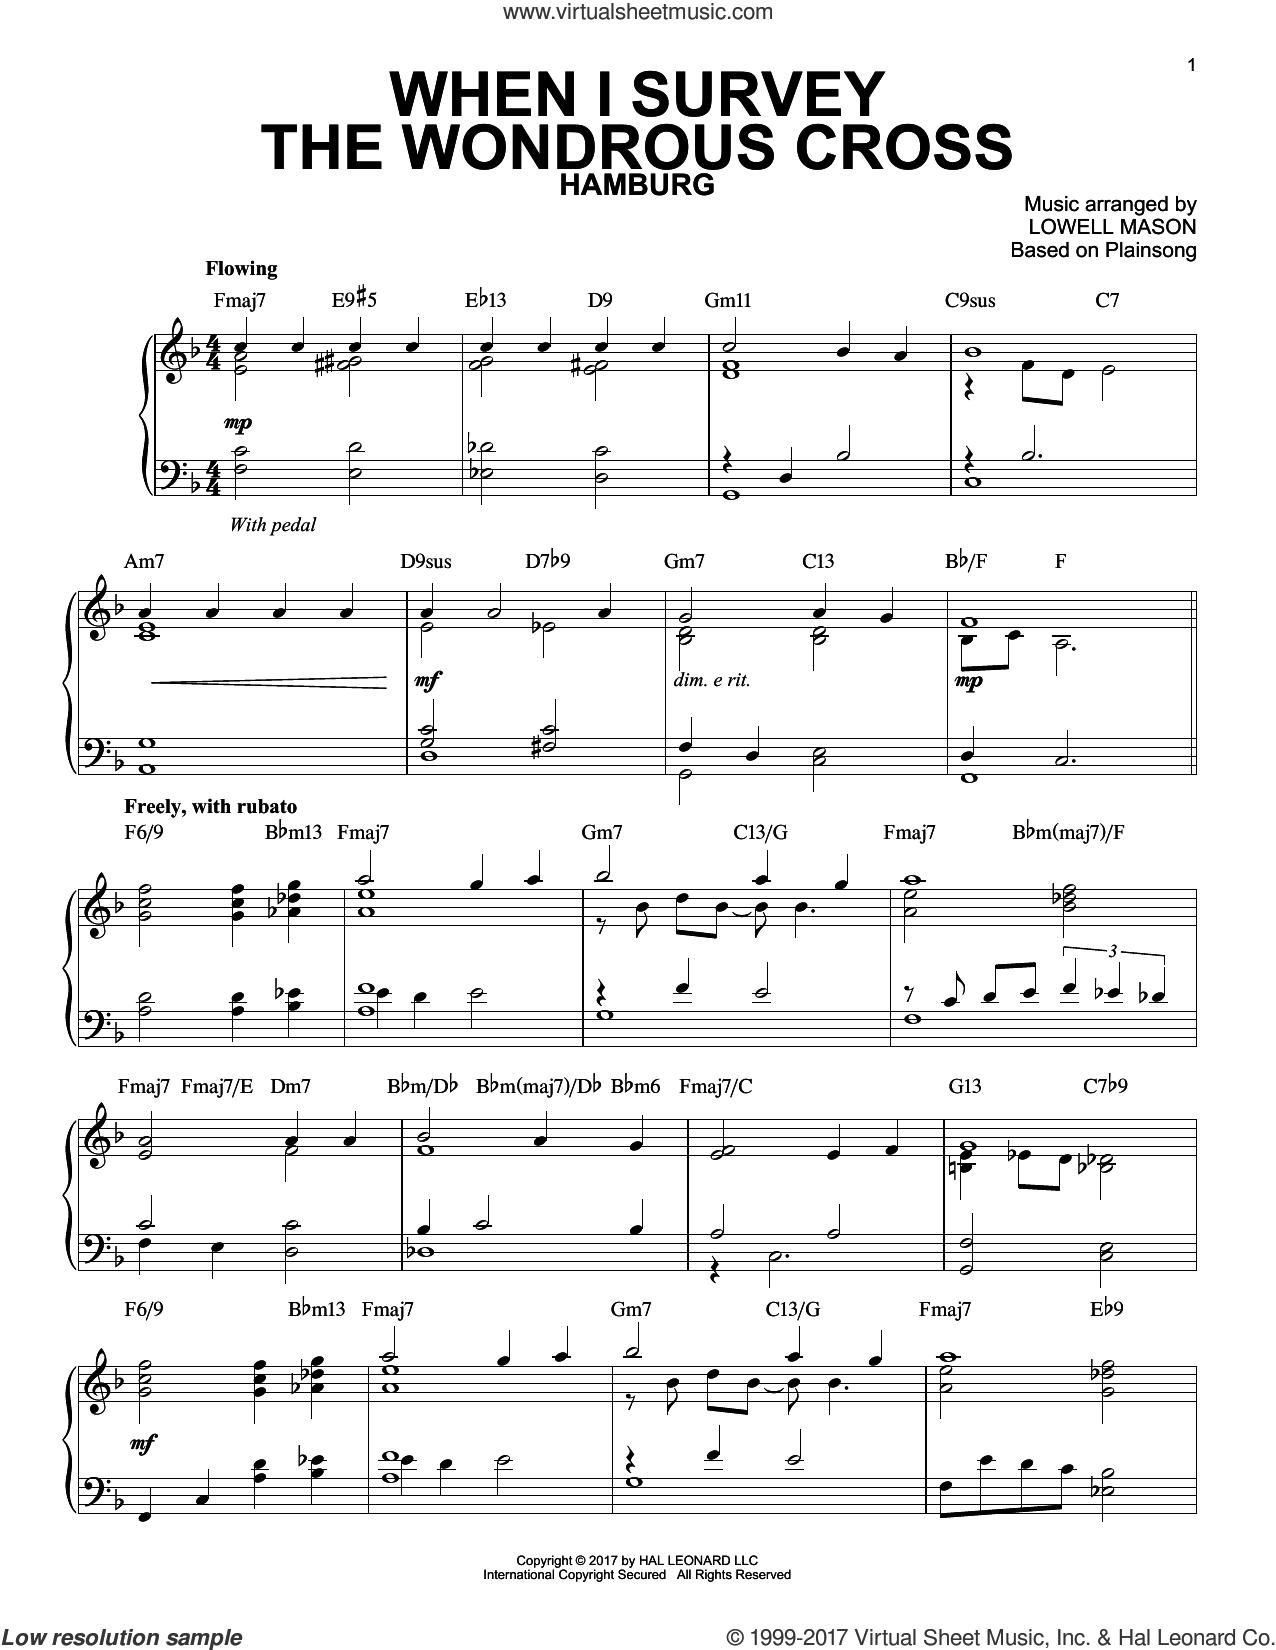 When I Survey The Wondrous Cross [Jazz version] sheet music for piano solo by Lowell Mason, Isaac Watts and Miscellaneous, intermediate skill level